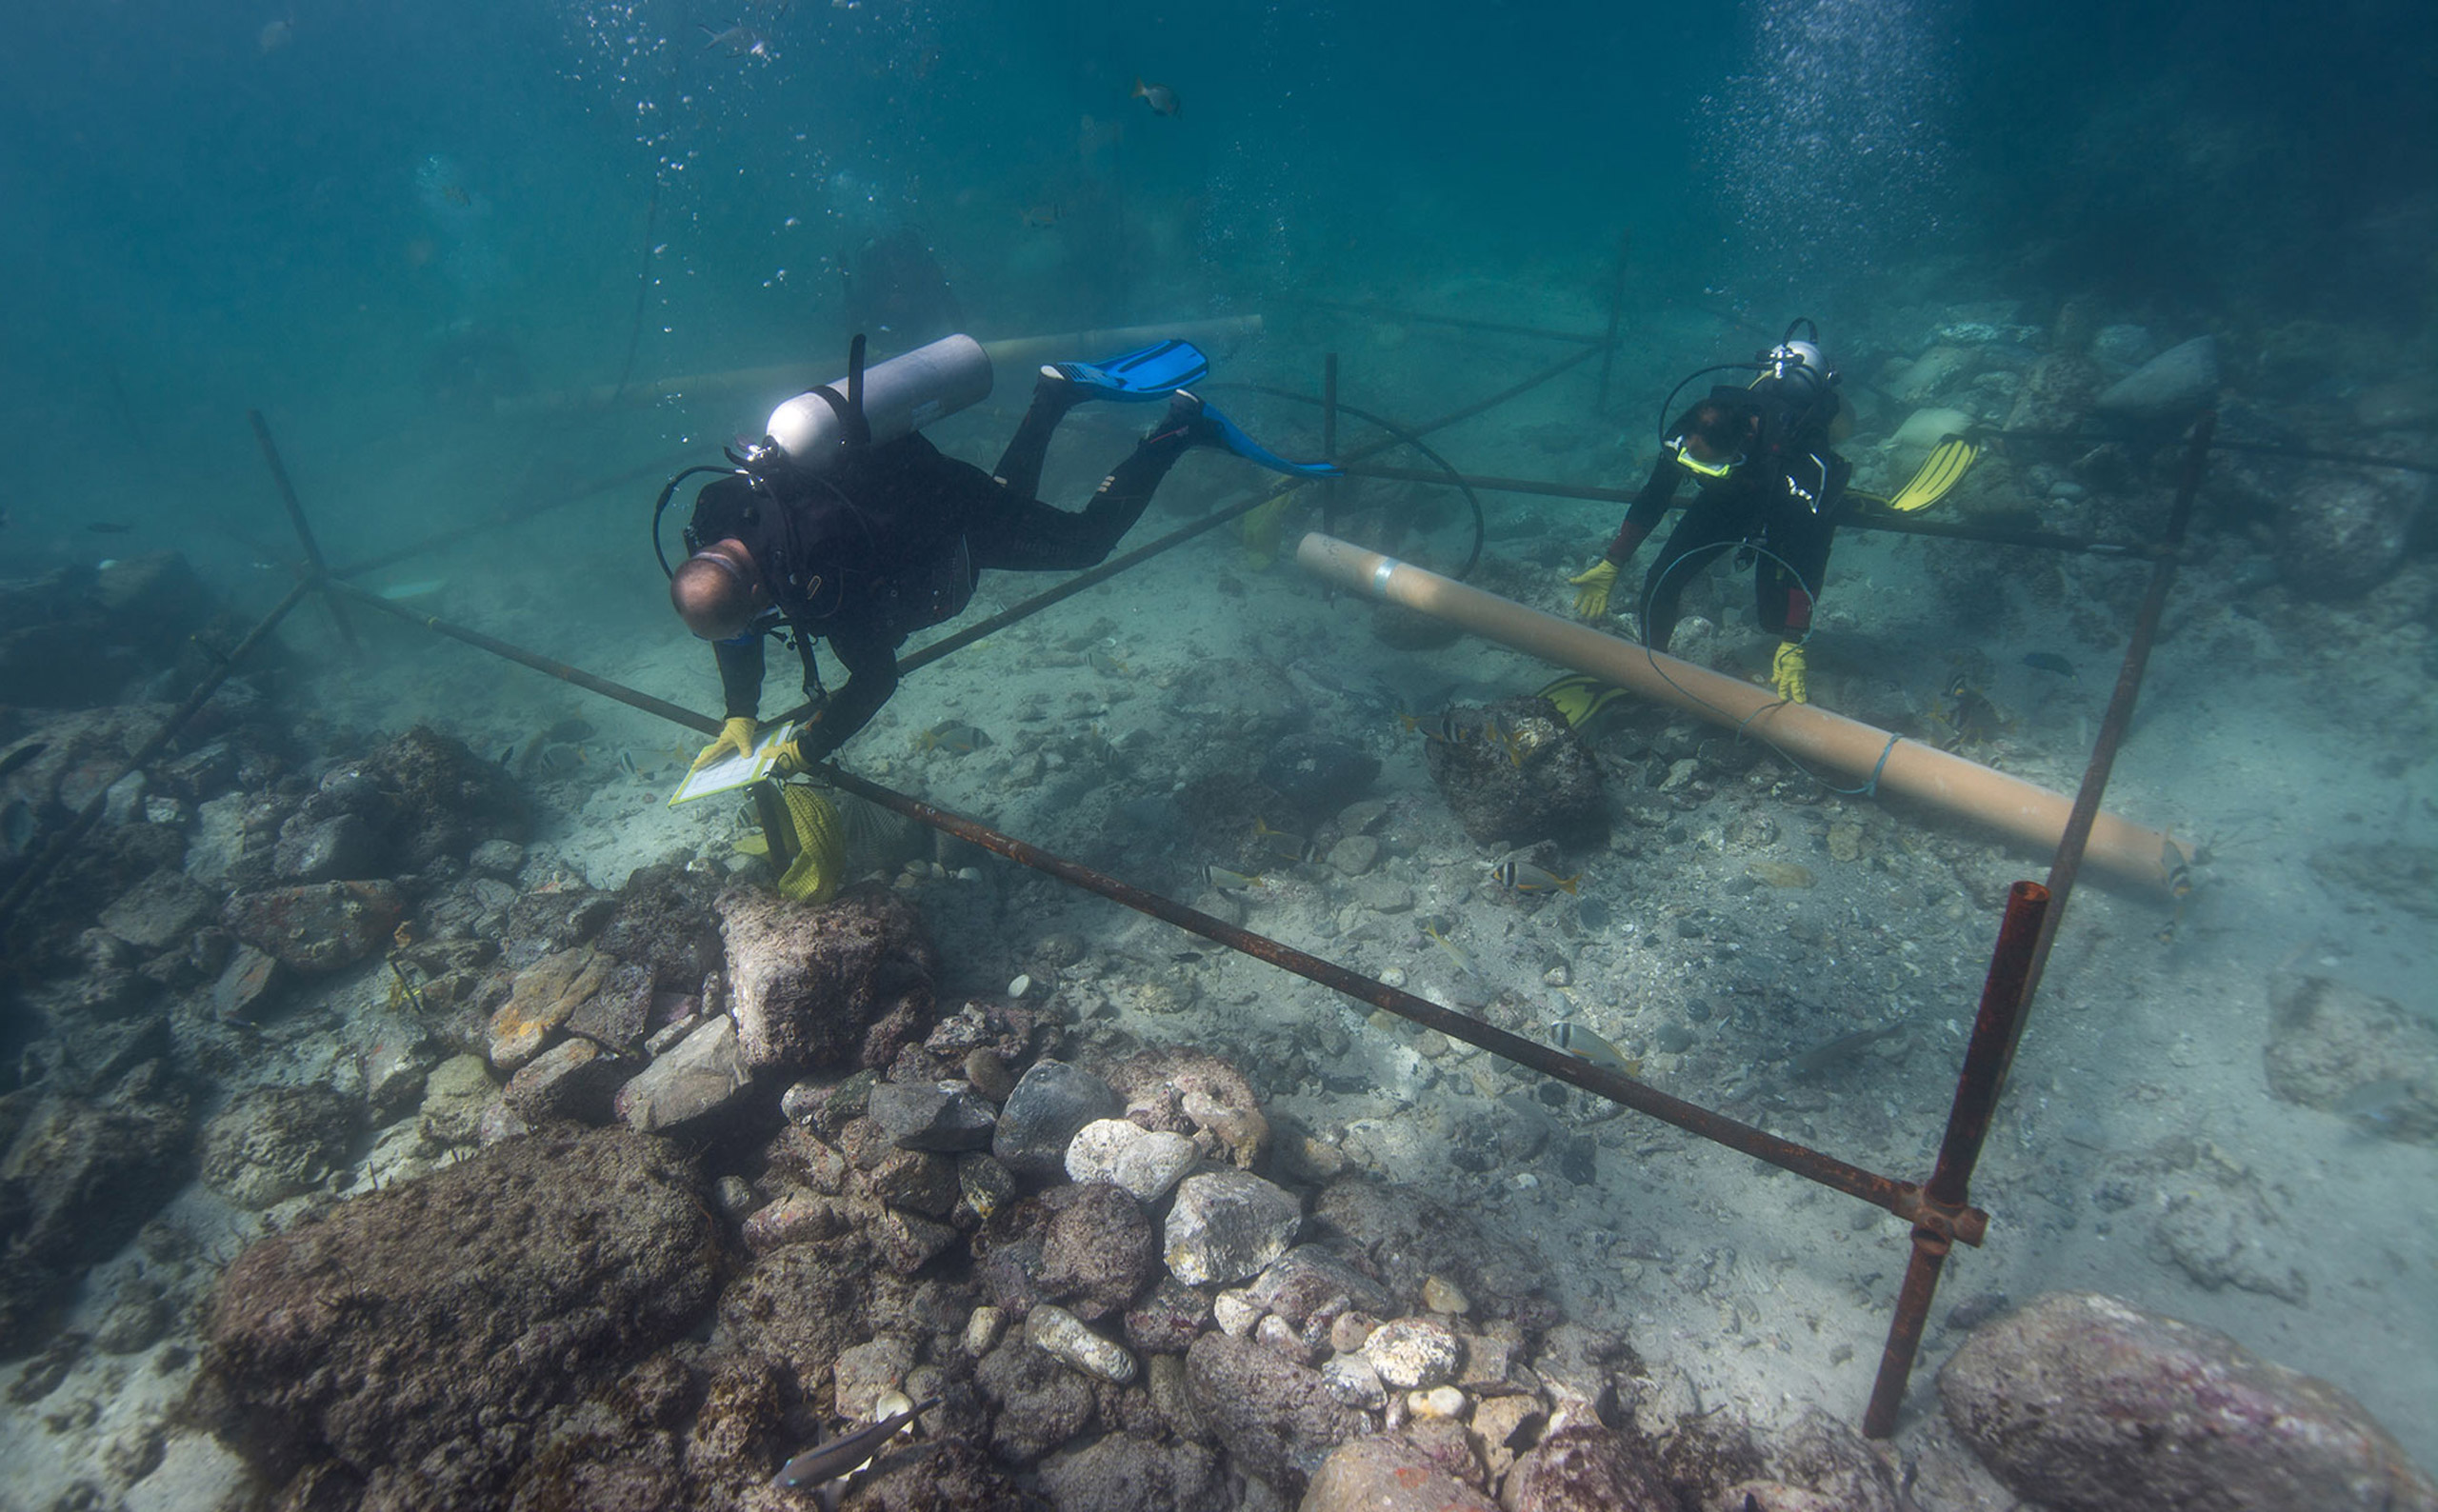 Divers excavate the wreck site of the Portuguese explorer Vasco da Gama's ship Esmeralda, which sank in a storm in May 1503 off the coast of Al Hallaniyah island in Oman, in this undated photo made available by Blue Water Recoveries on Mar. 15, 2016.